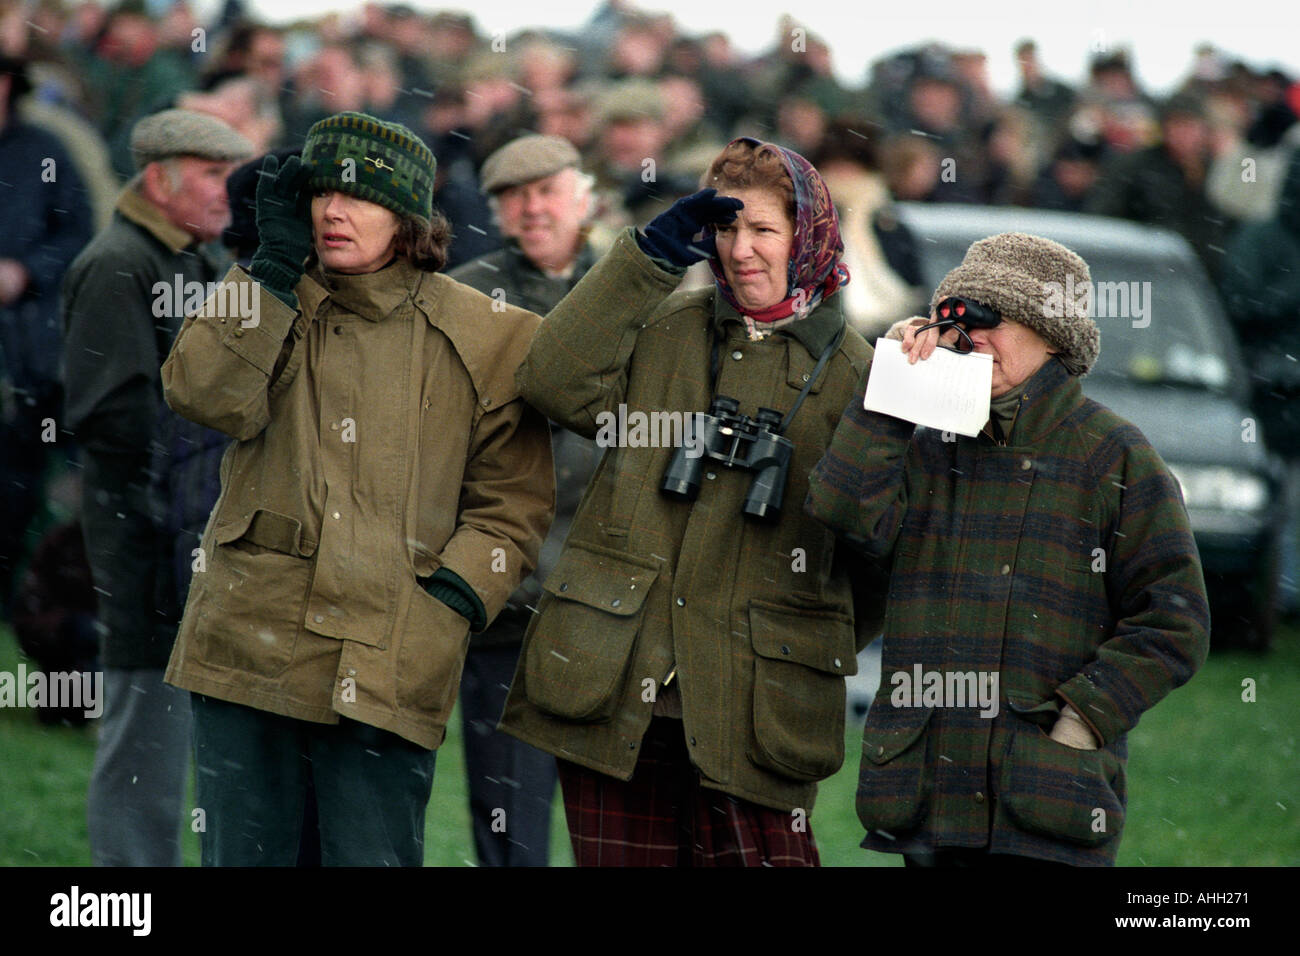 three-ladies-watching-the-horse-racing-in-a-hail-storm-at-the-north-AHH271.jpg